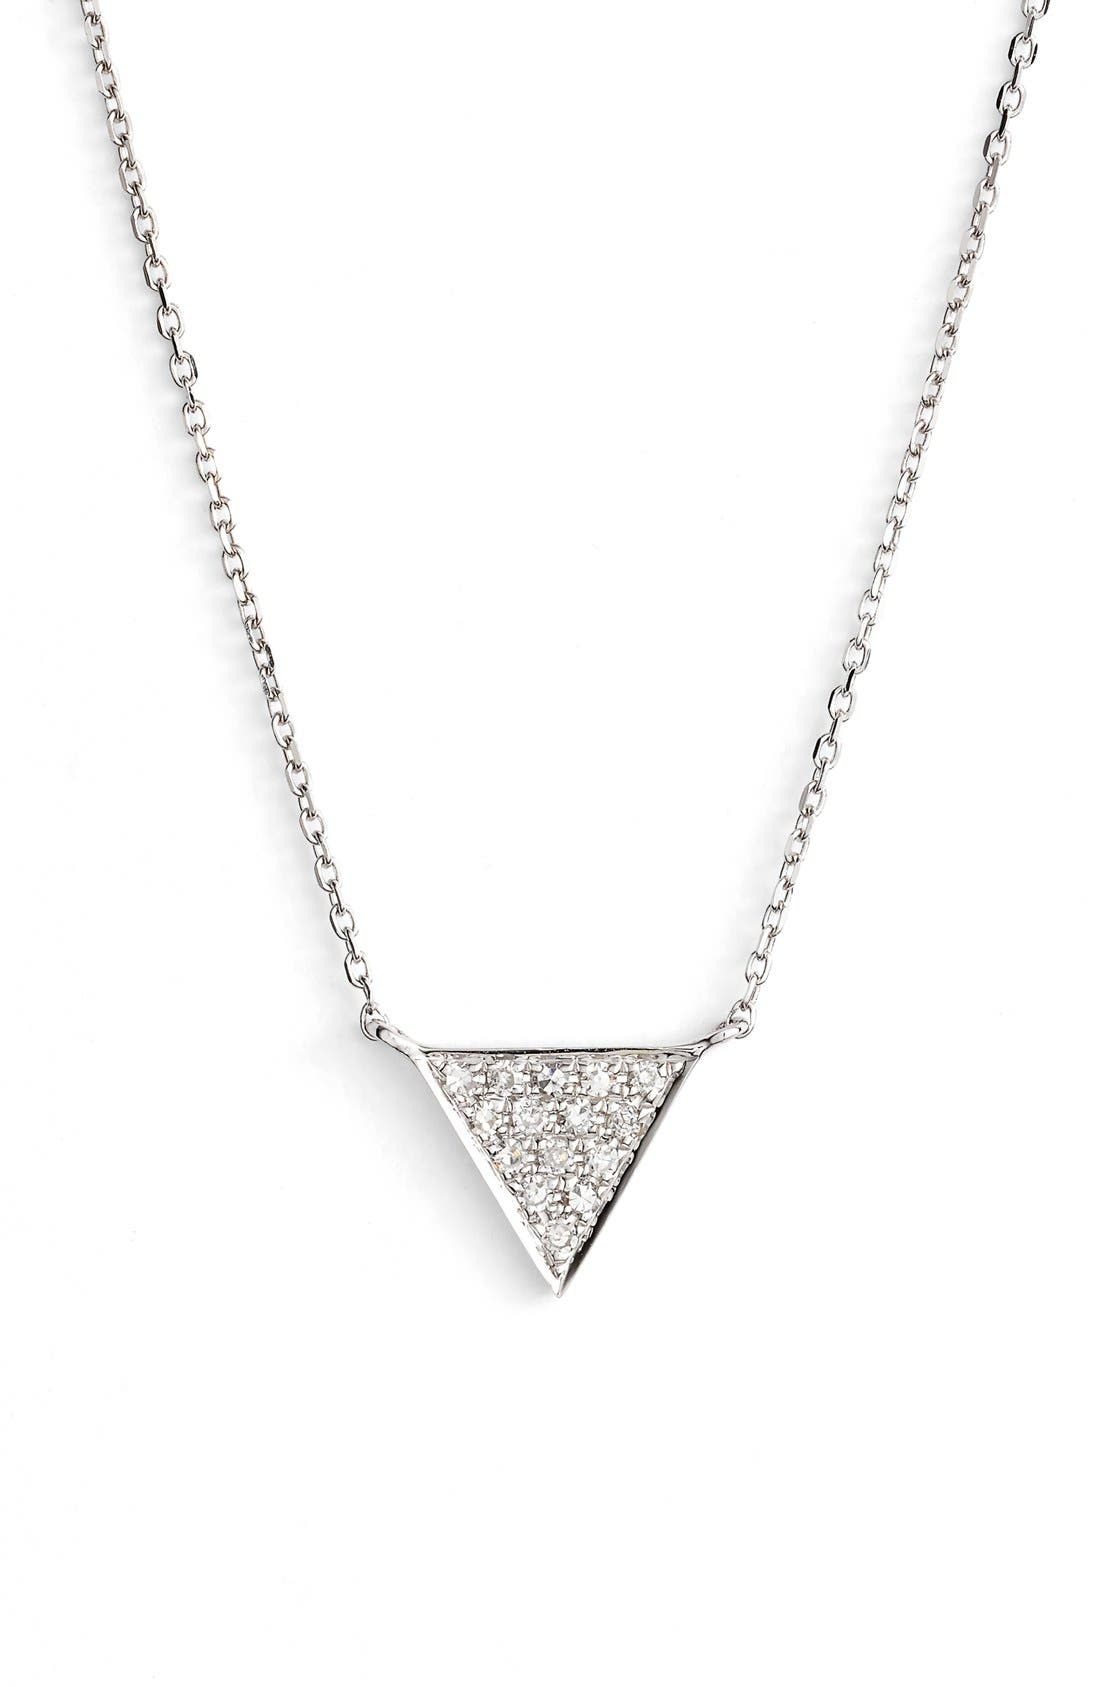 Dana Rebecca Designs 'Emily Sarah' Diamond Triangle Pendant Necklace